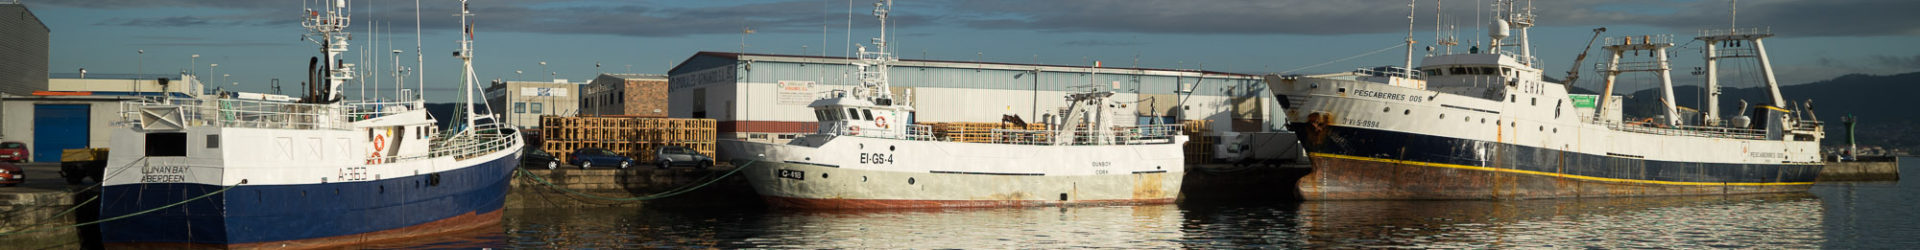 Calvo Group renews its fleet with tuna freezer.